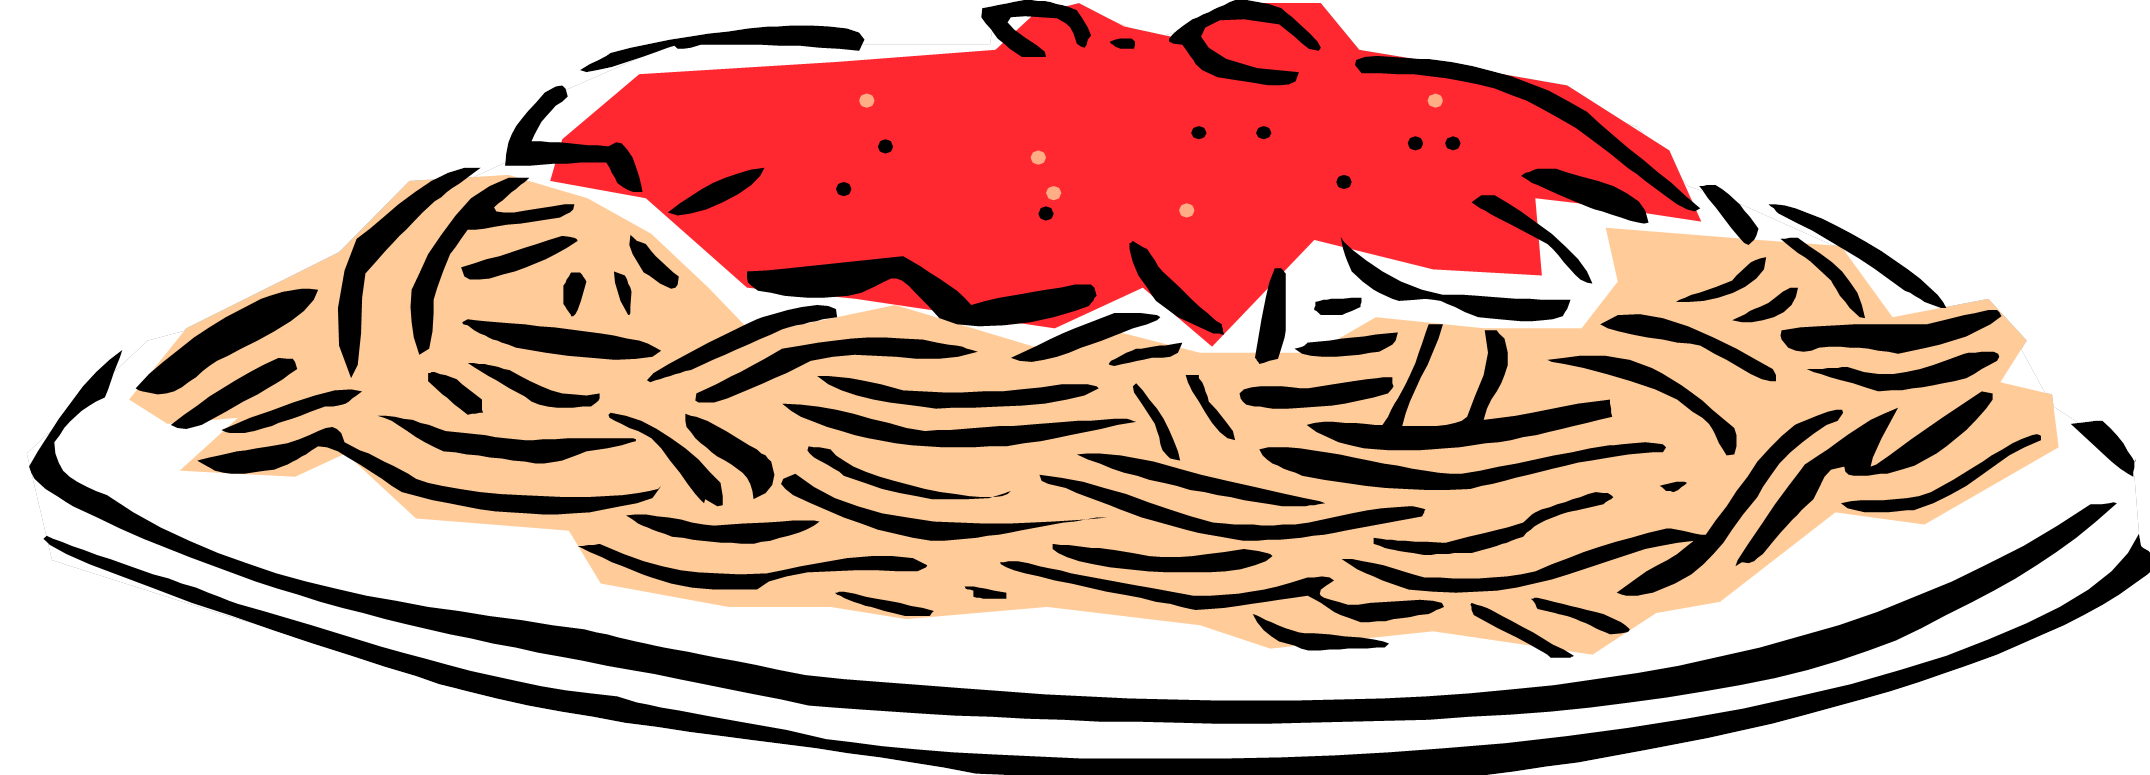 Image result for pasta clipart